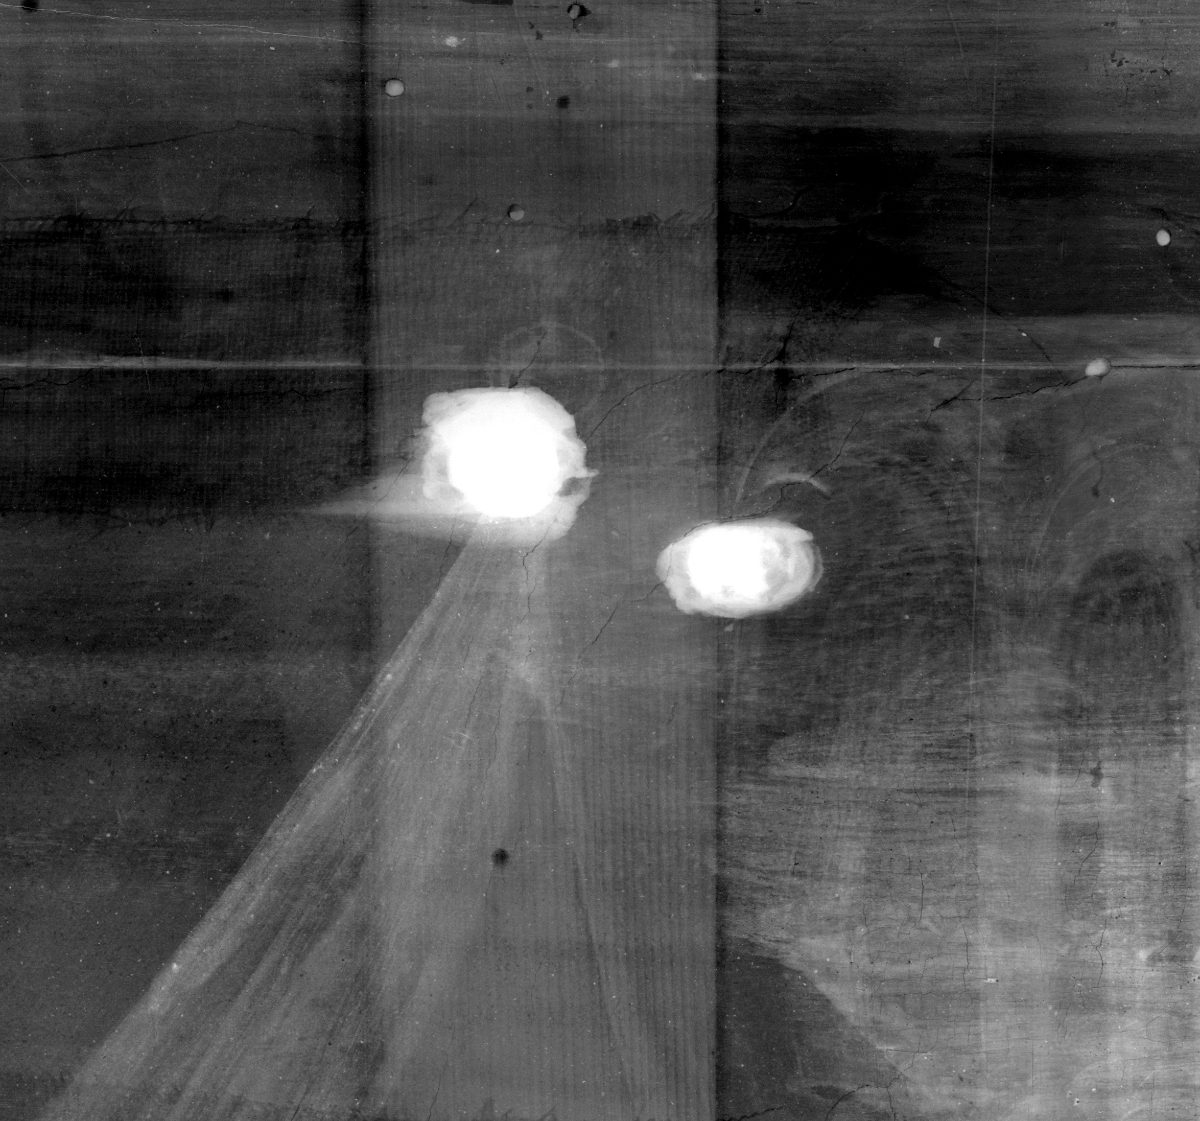 Section of x-ray of Cupid & Psyche showing some filler. The filler is in two circles and appears white against the dark wood and painting.